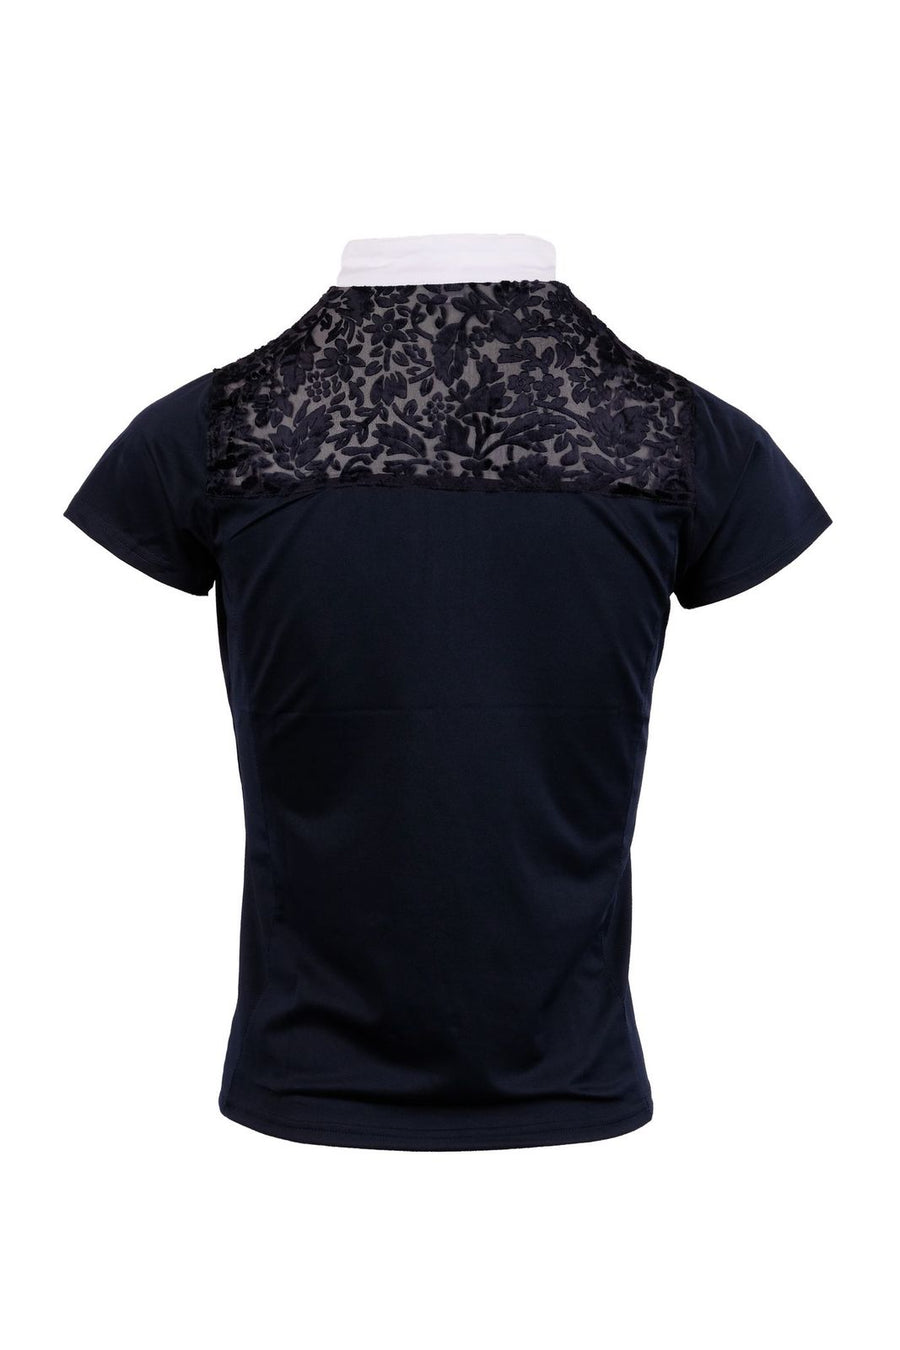 Montar Dania Navy Lace Limited Edition Competition Shirt